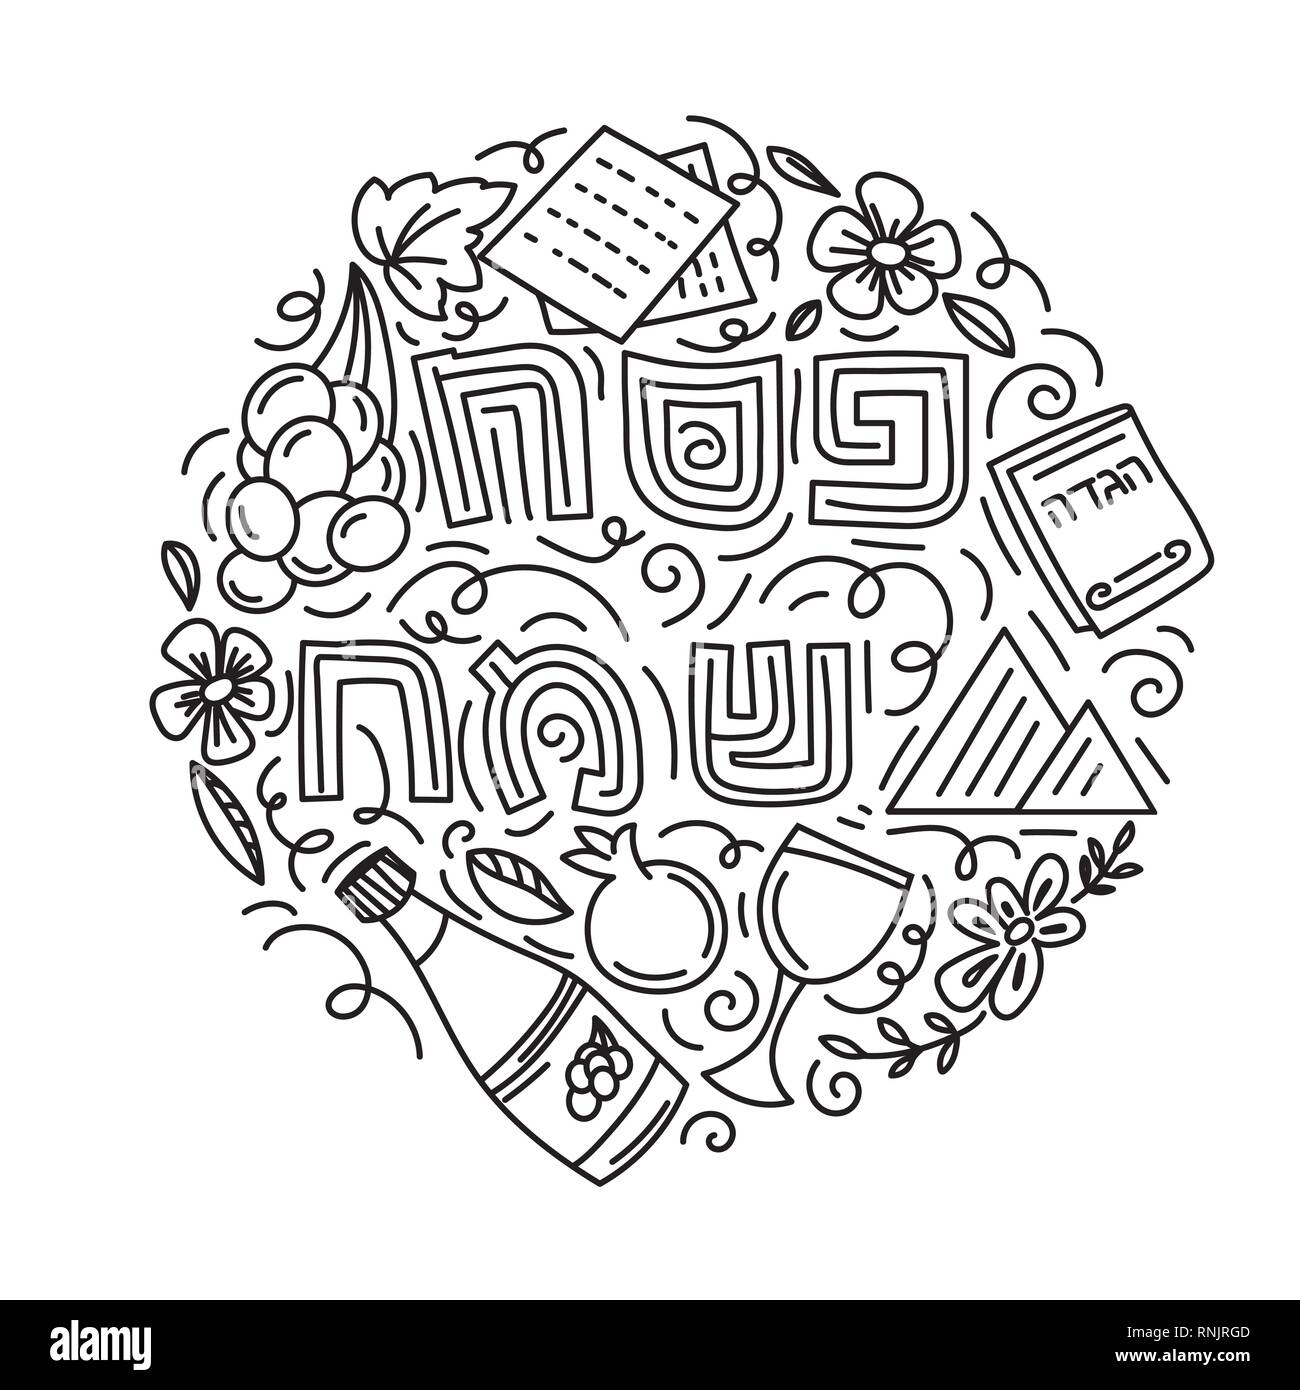 Passover greeting card (Jewish holiday Pesach). Hebrew text: happy Passover. Black and white vector illustration doodle style. Isolated on white background. Coloring book page - Stock Image